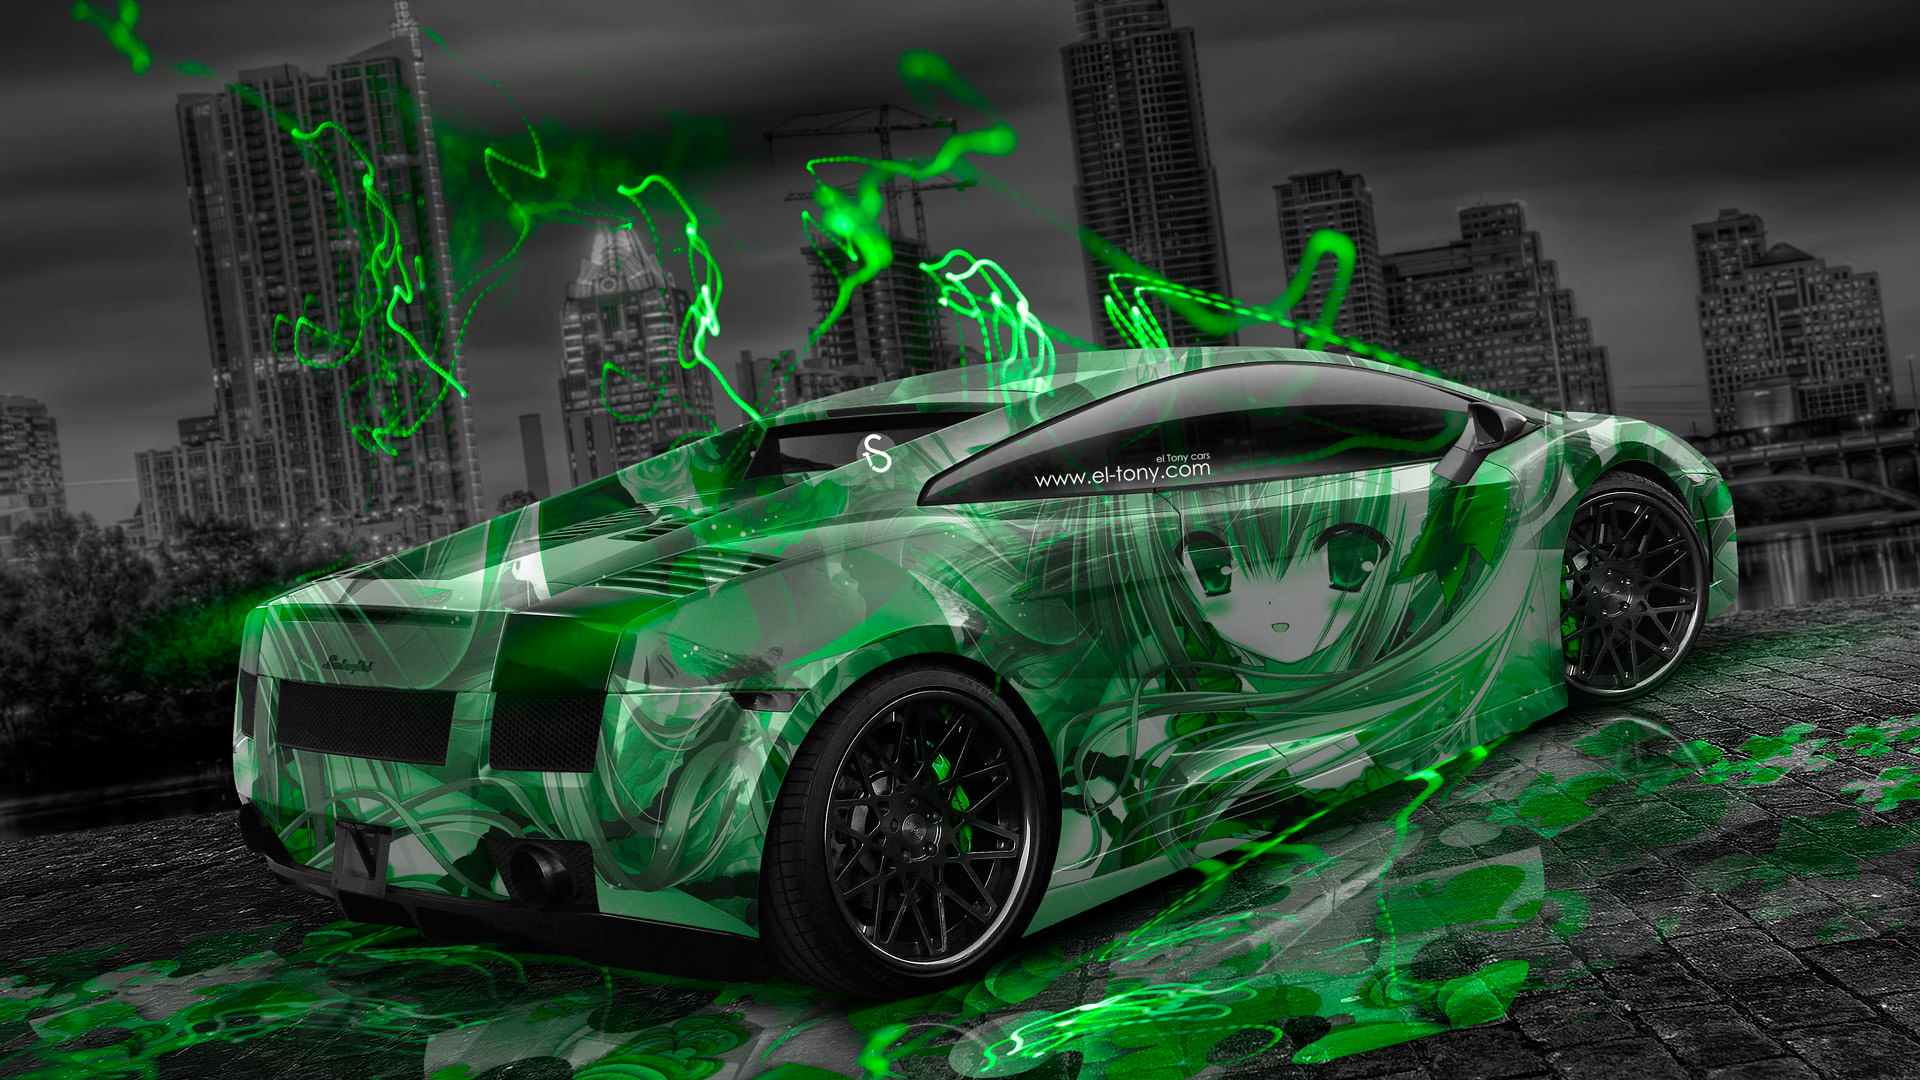 Neon Supercars Wallpapers - Top Free Neon Supercars ...